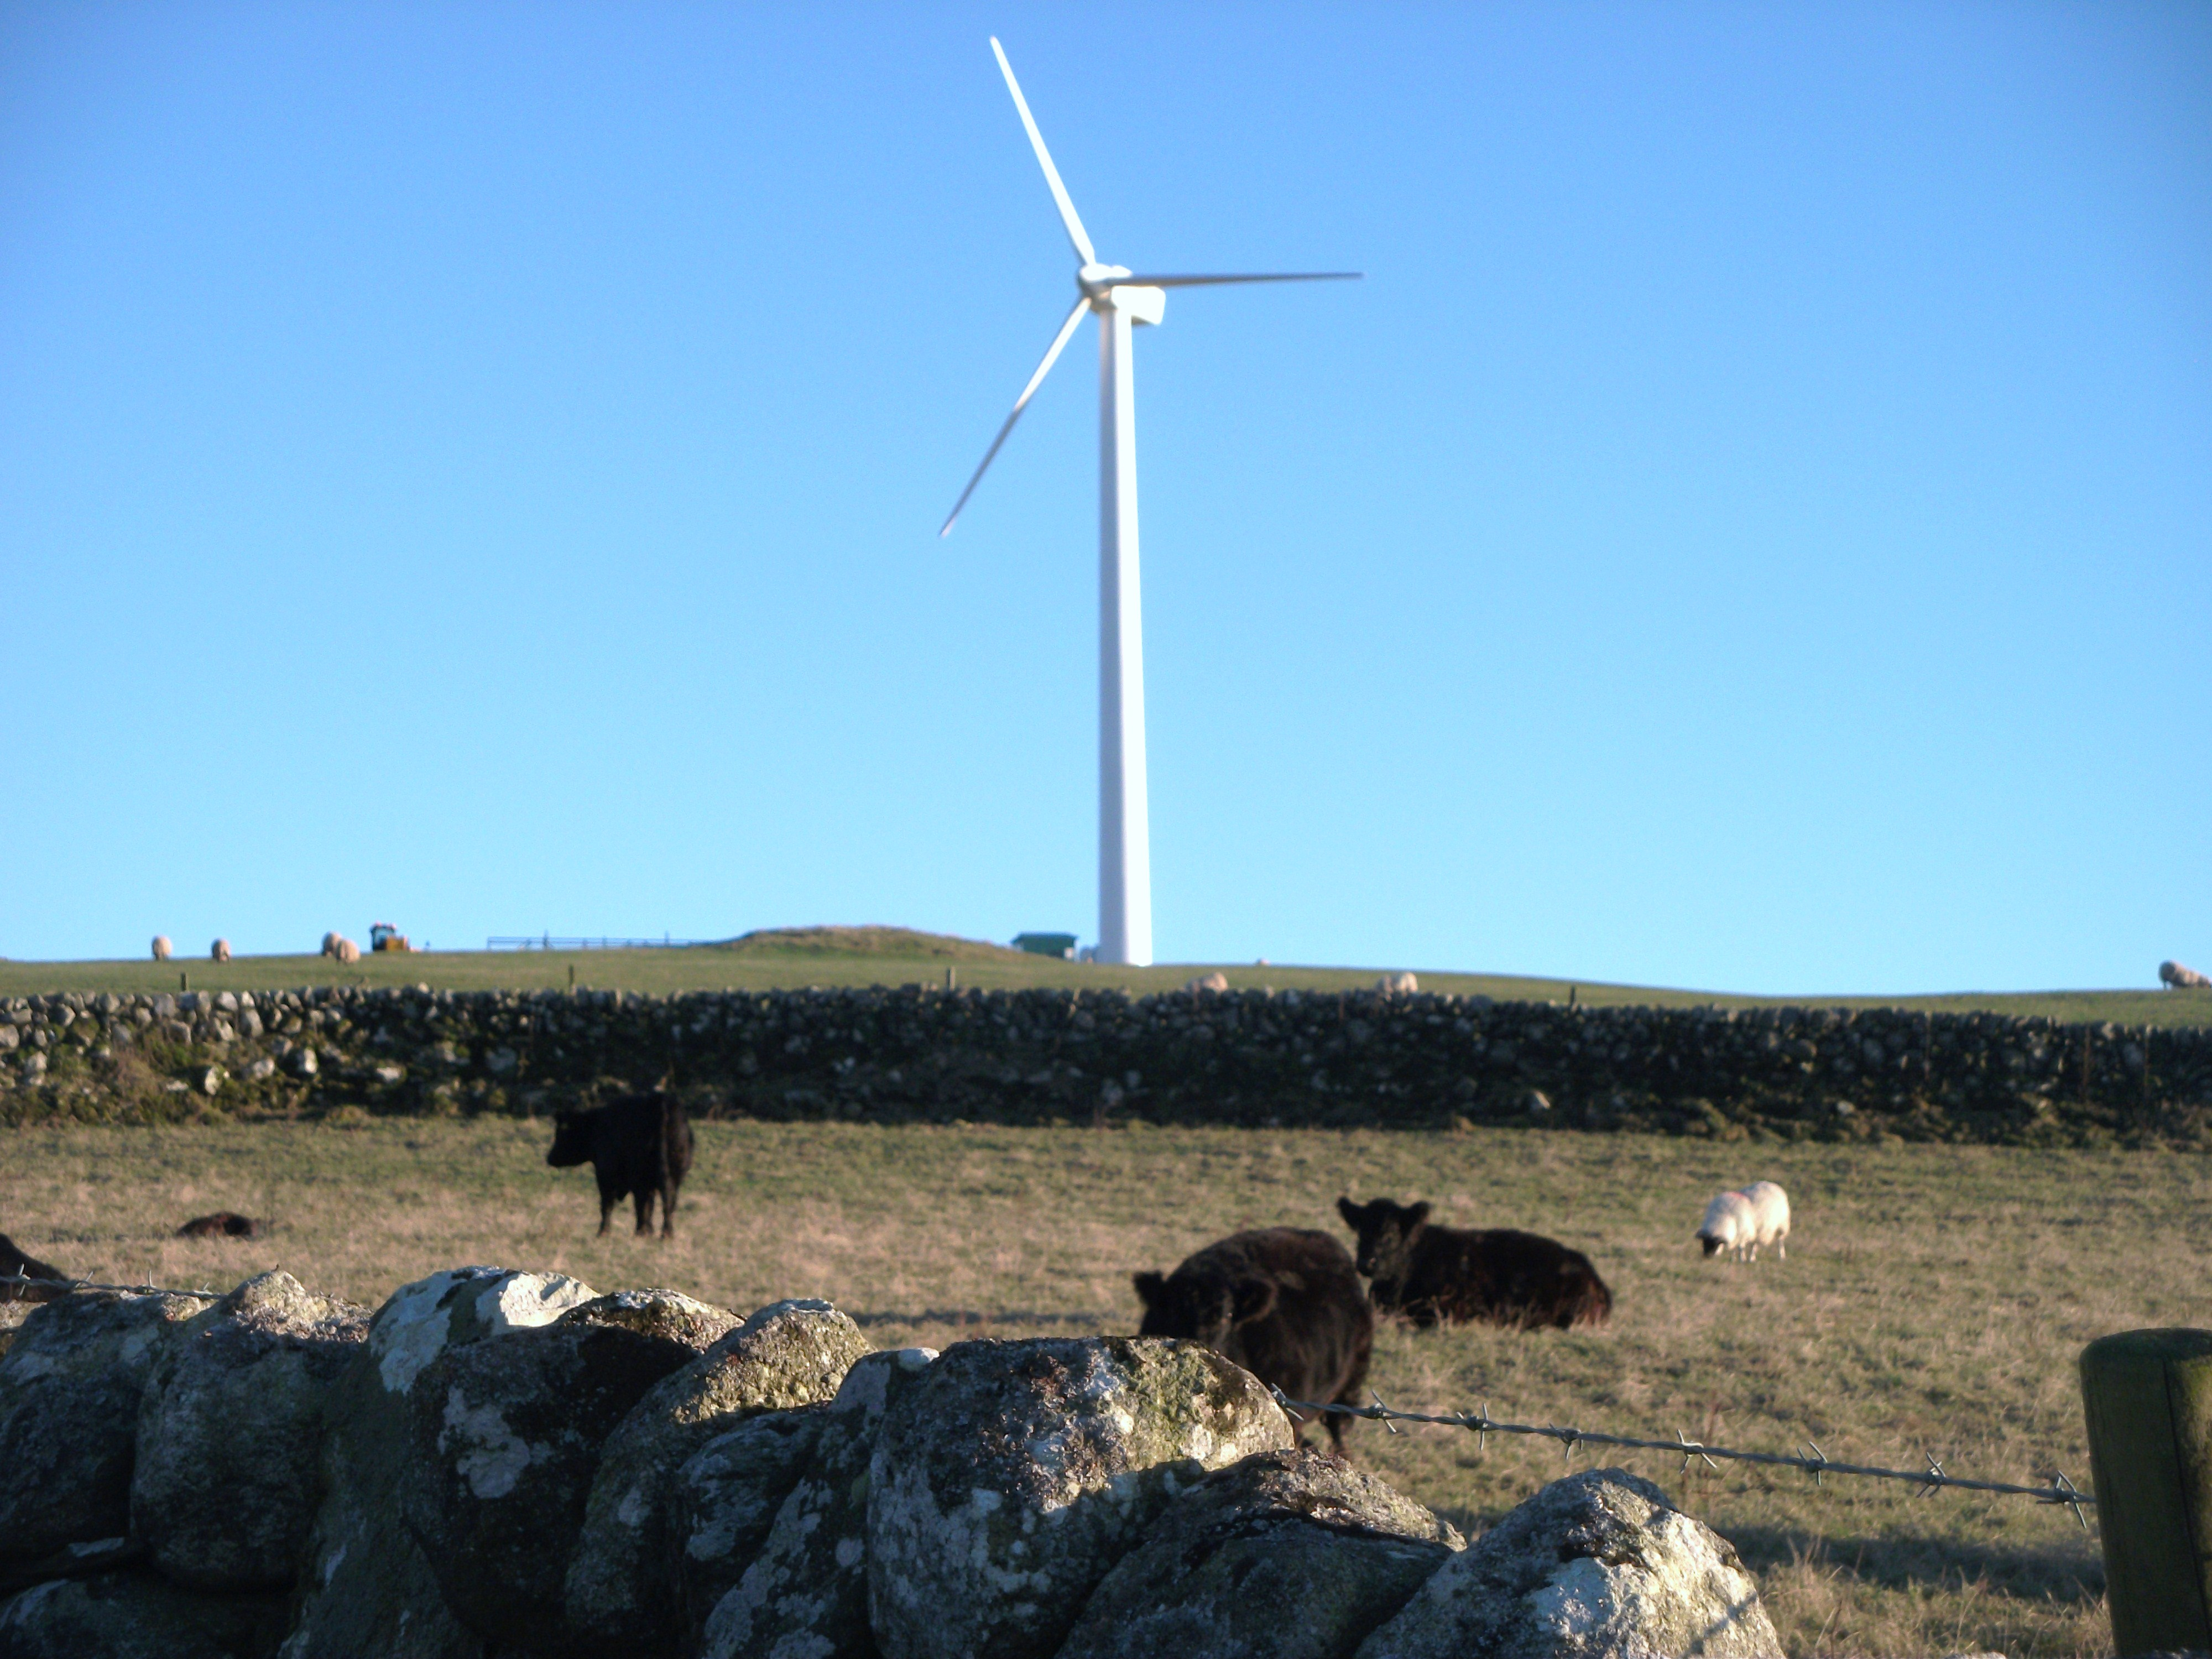 No more onshore wind farm subsi s in the UK